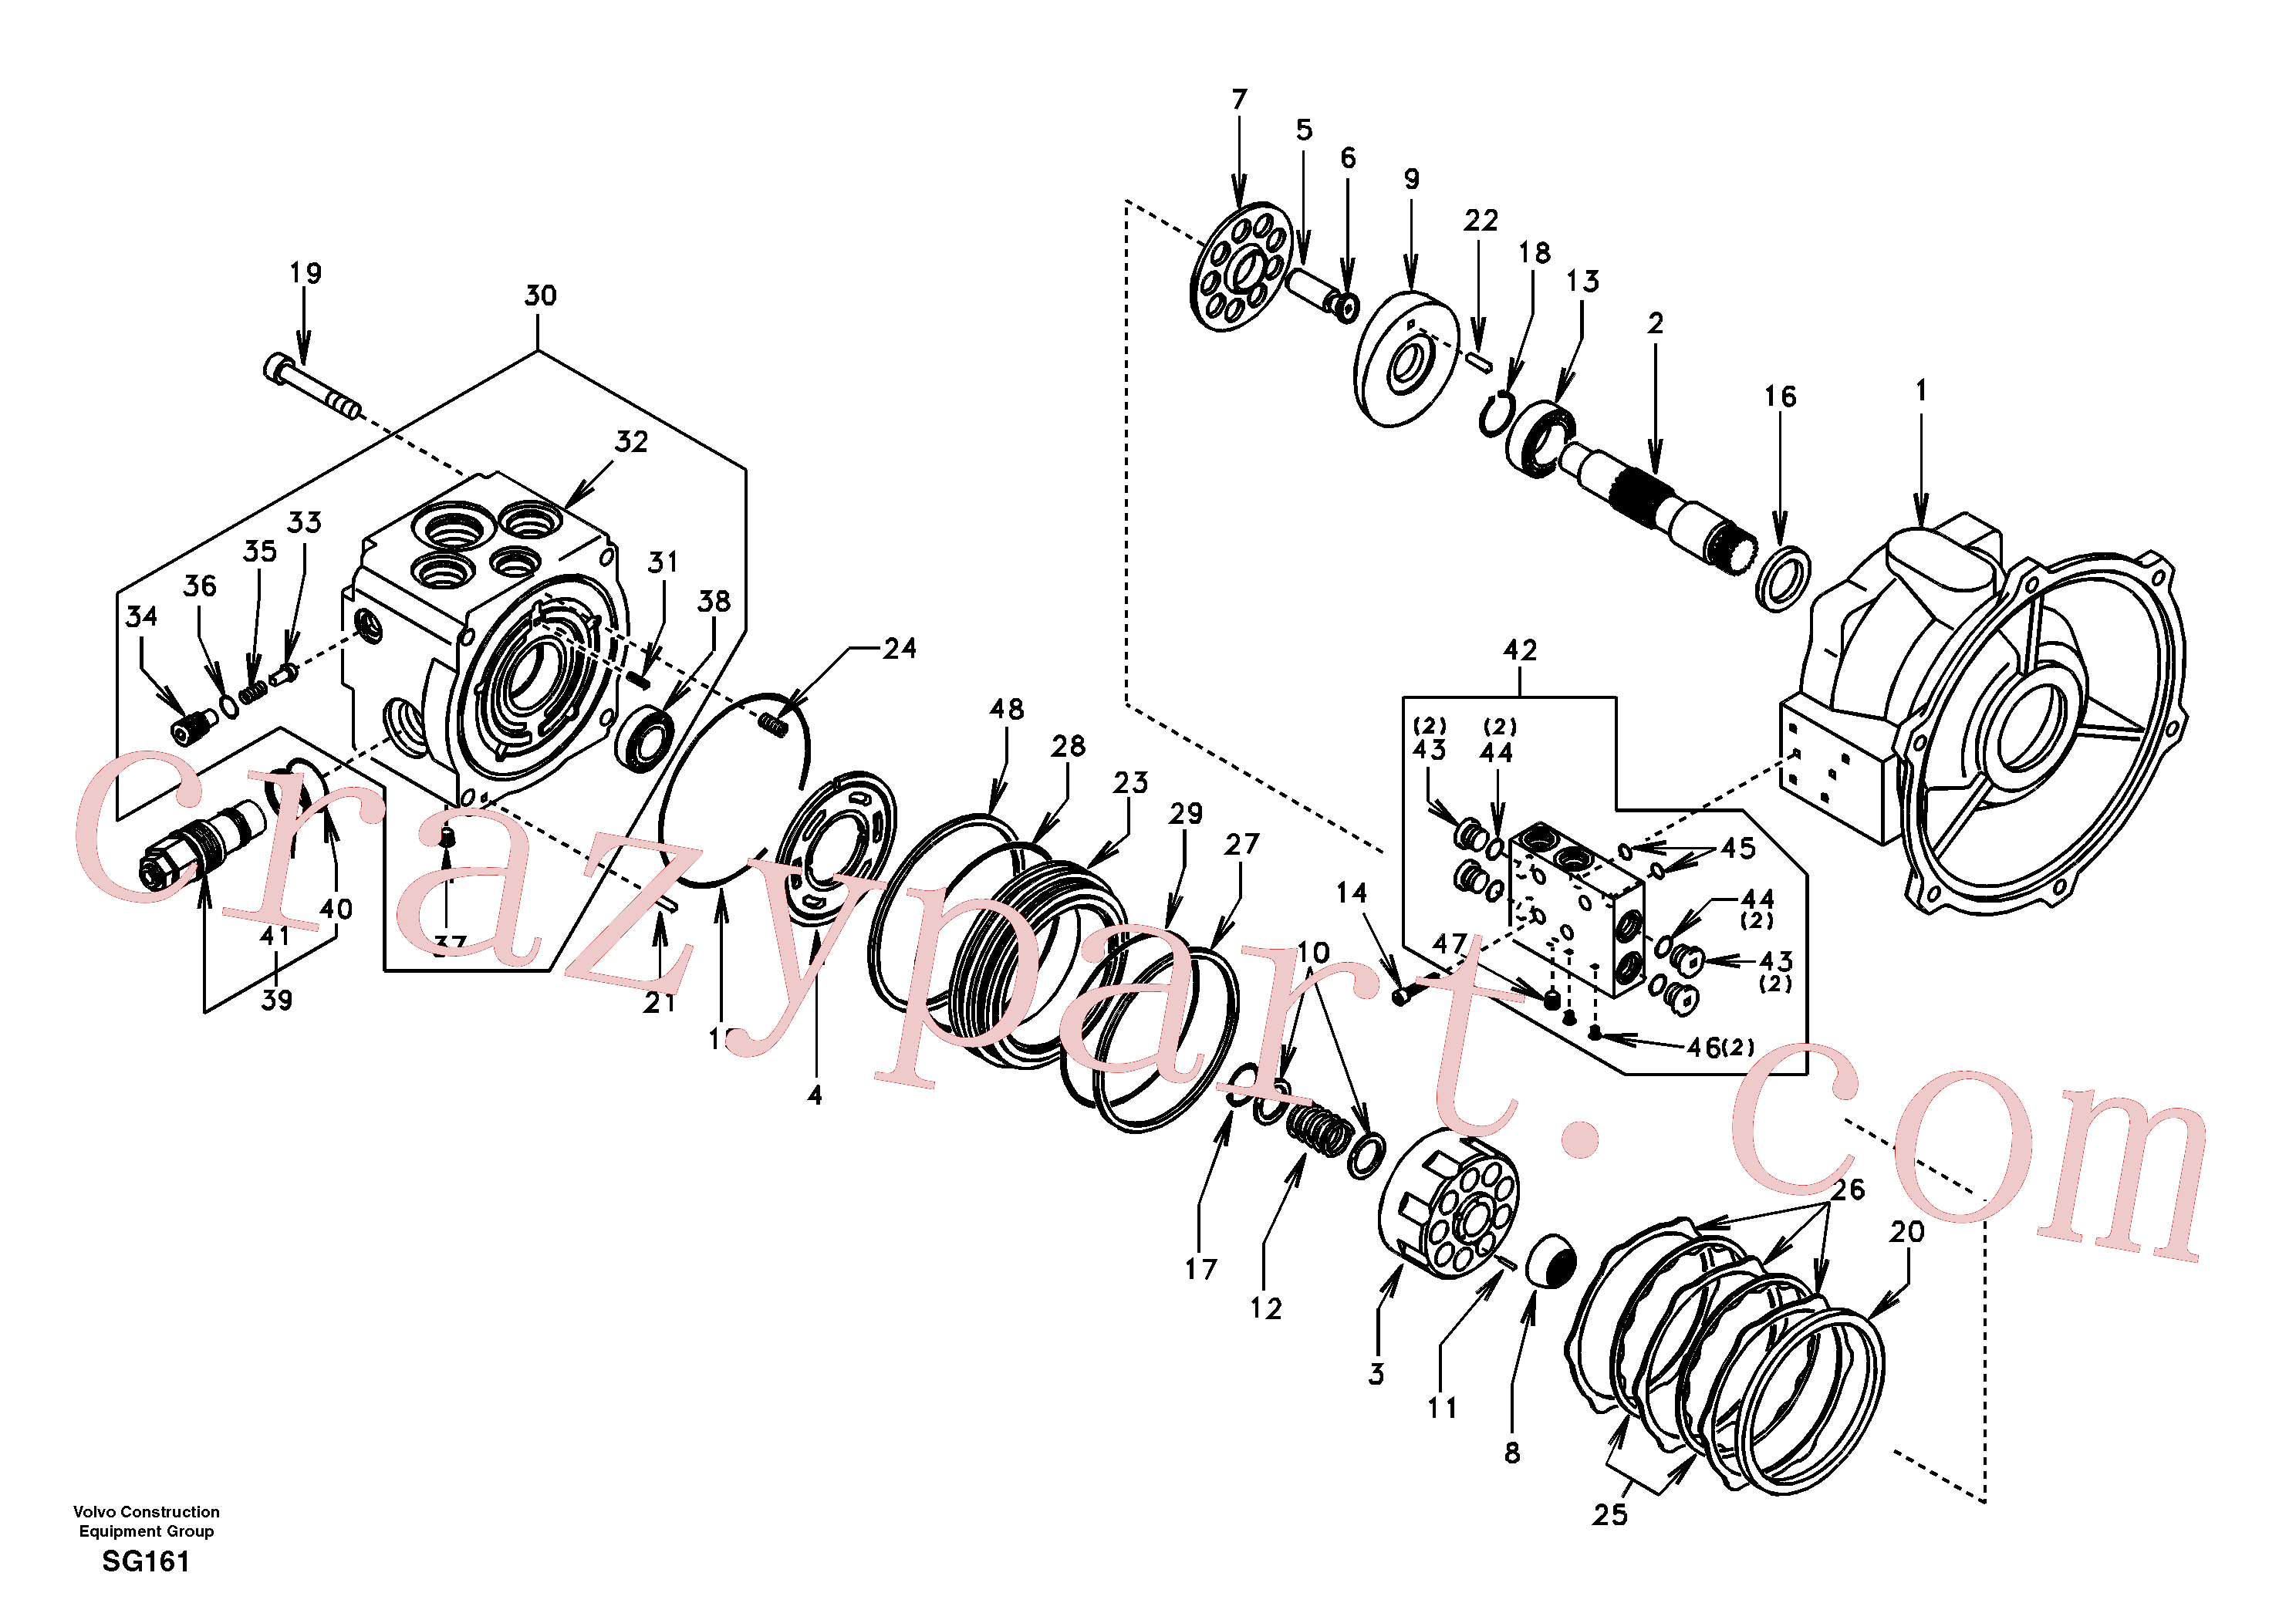 SA9511-22115 for Volvo Swing motor(SG161 assembly)